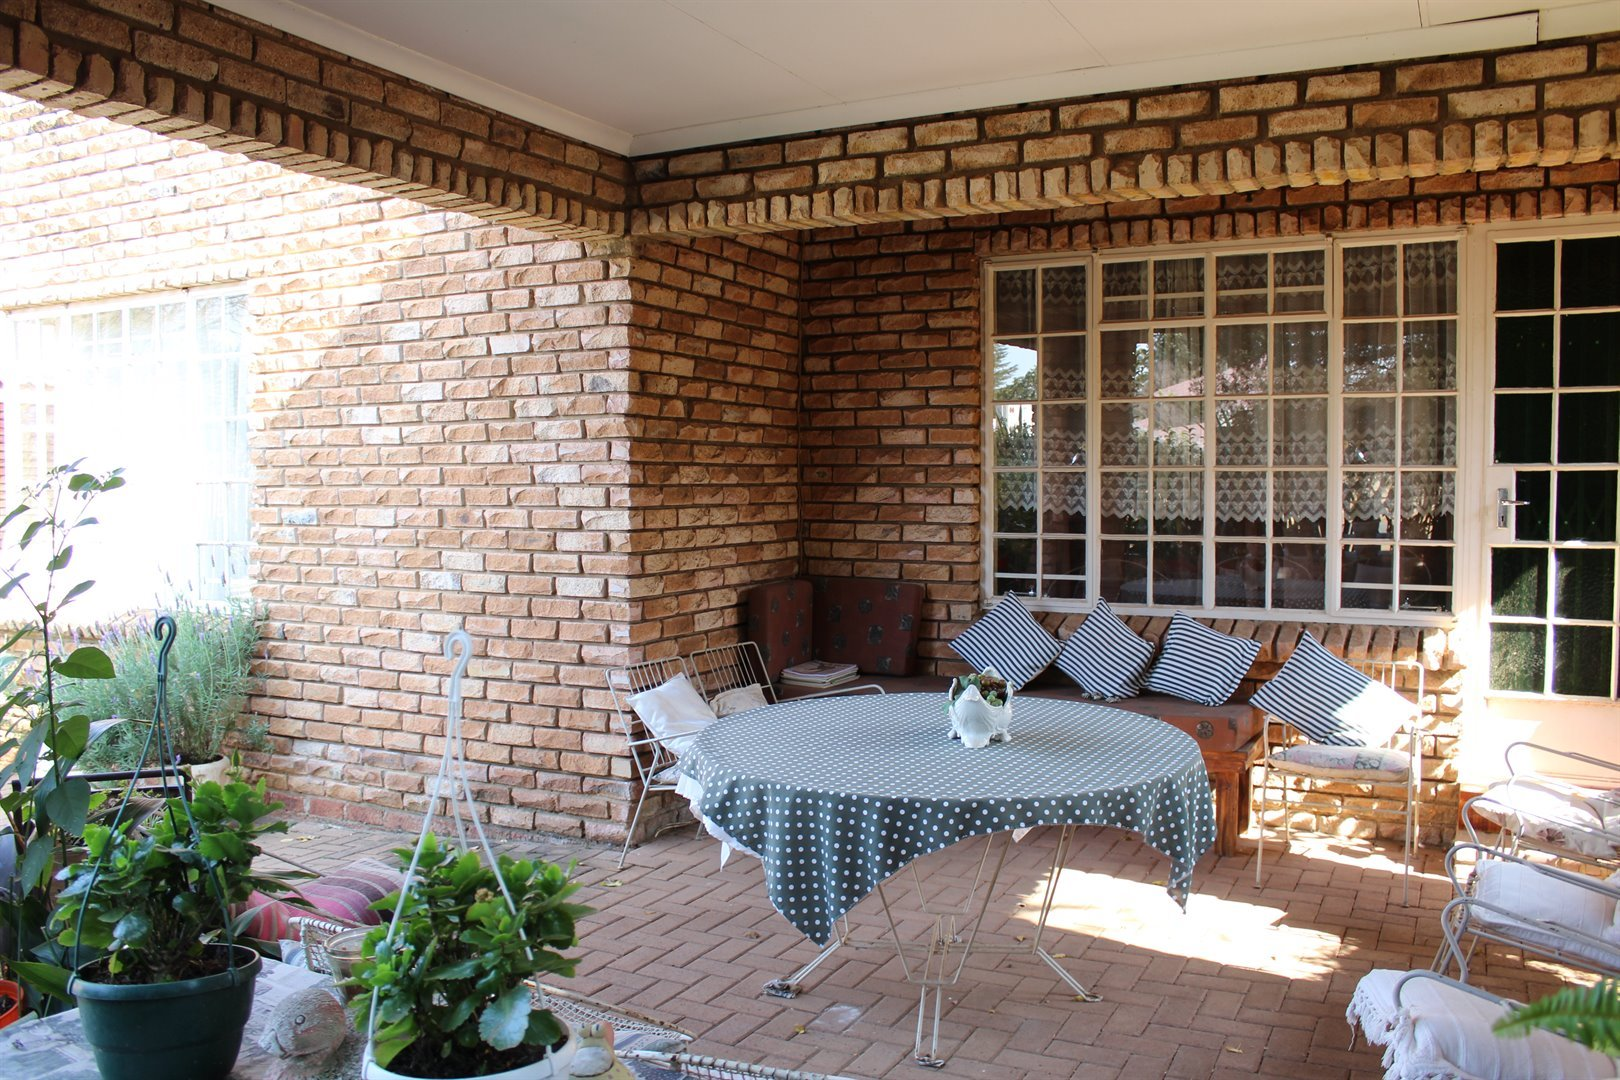 Suid Dorp property for sale. Ref No: 13508208. Picture no 15